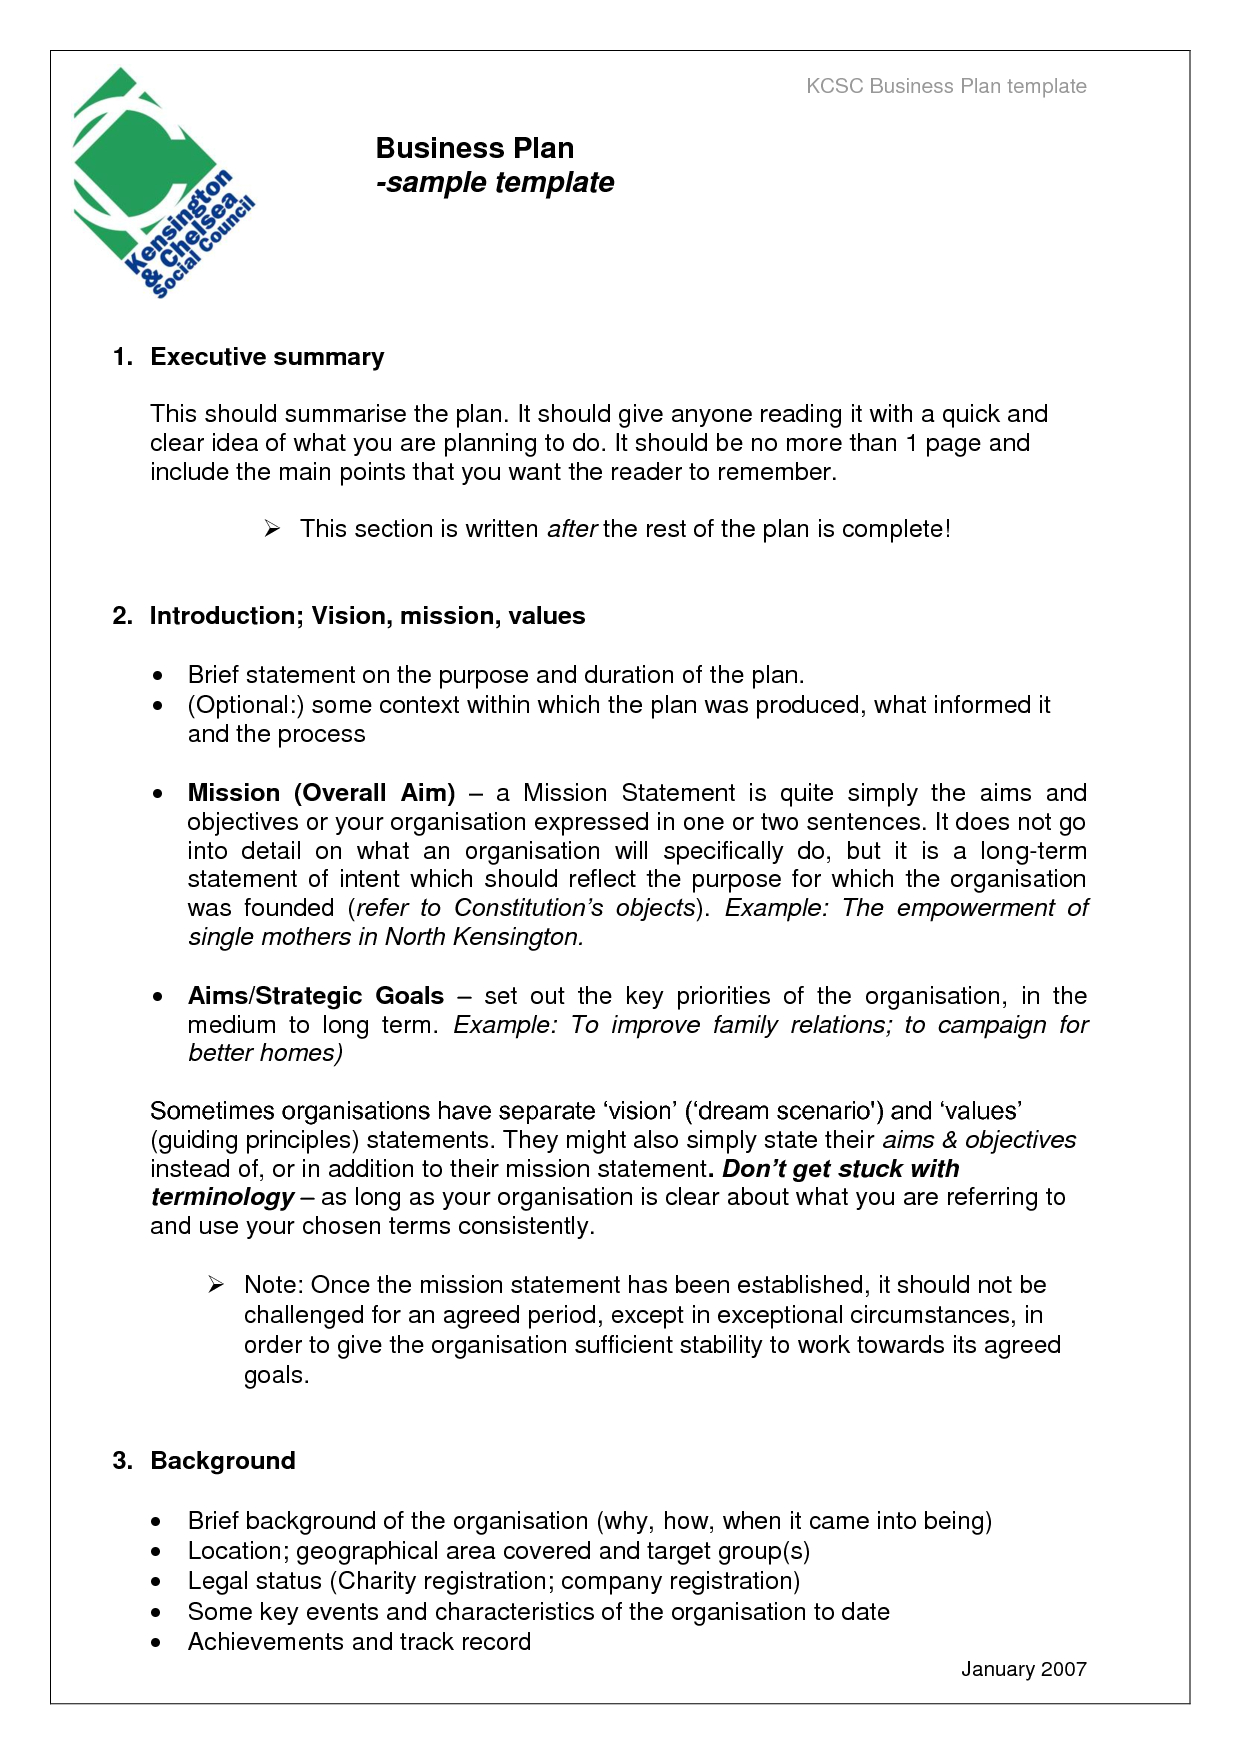 Business Templates Exles Business Plan  Desert Loft  Business Throughout How To Write A Business Proposal Template